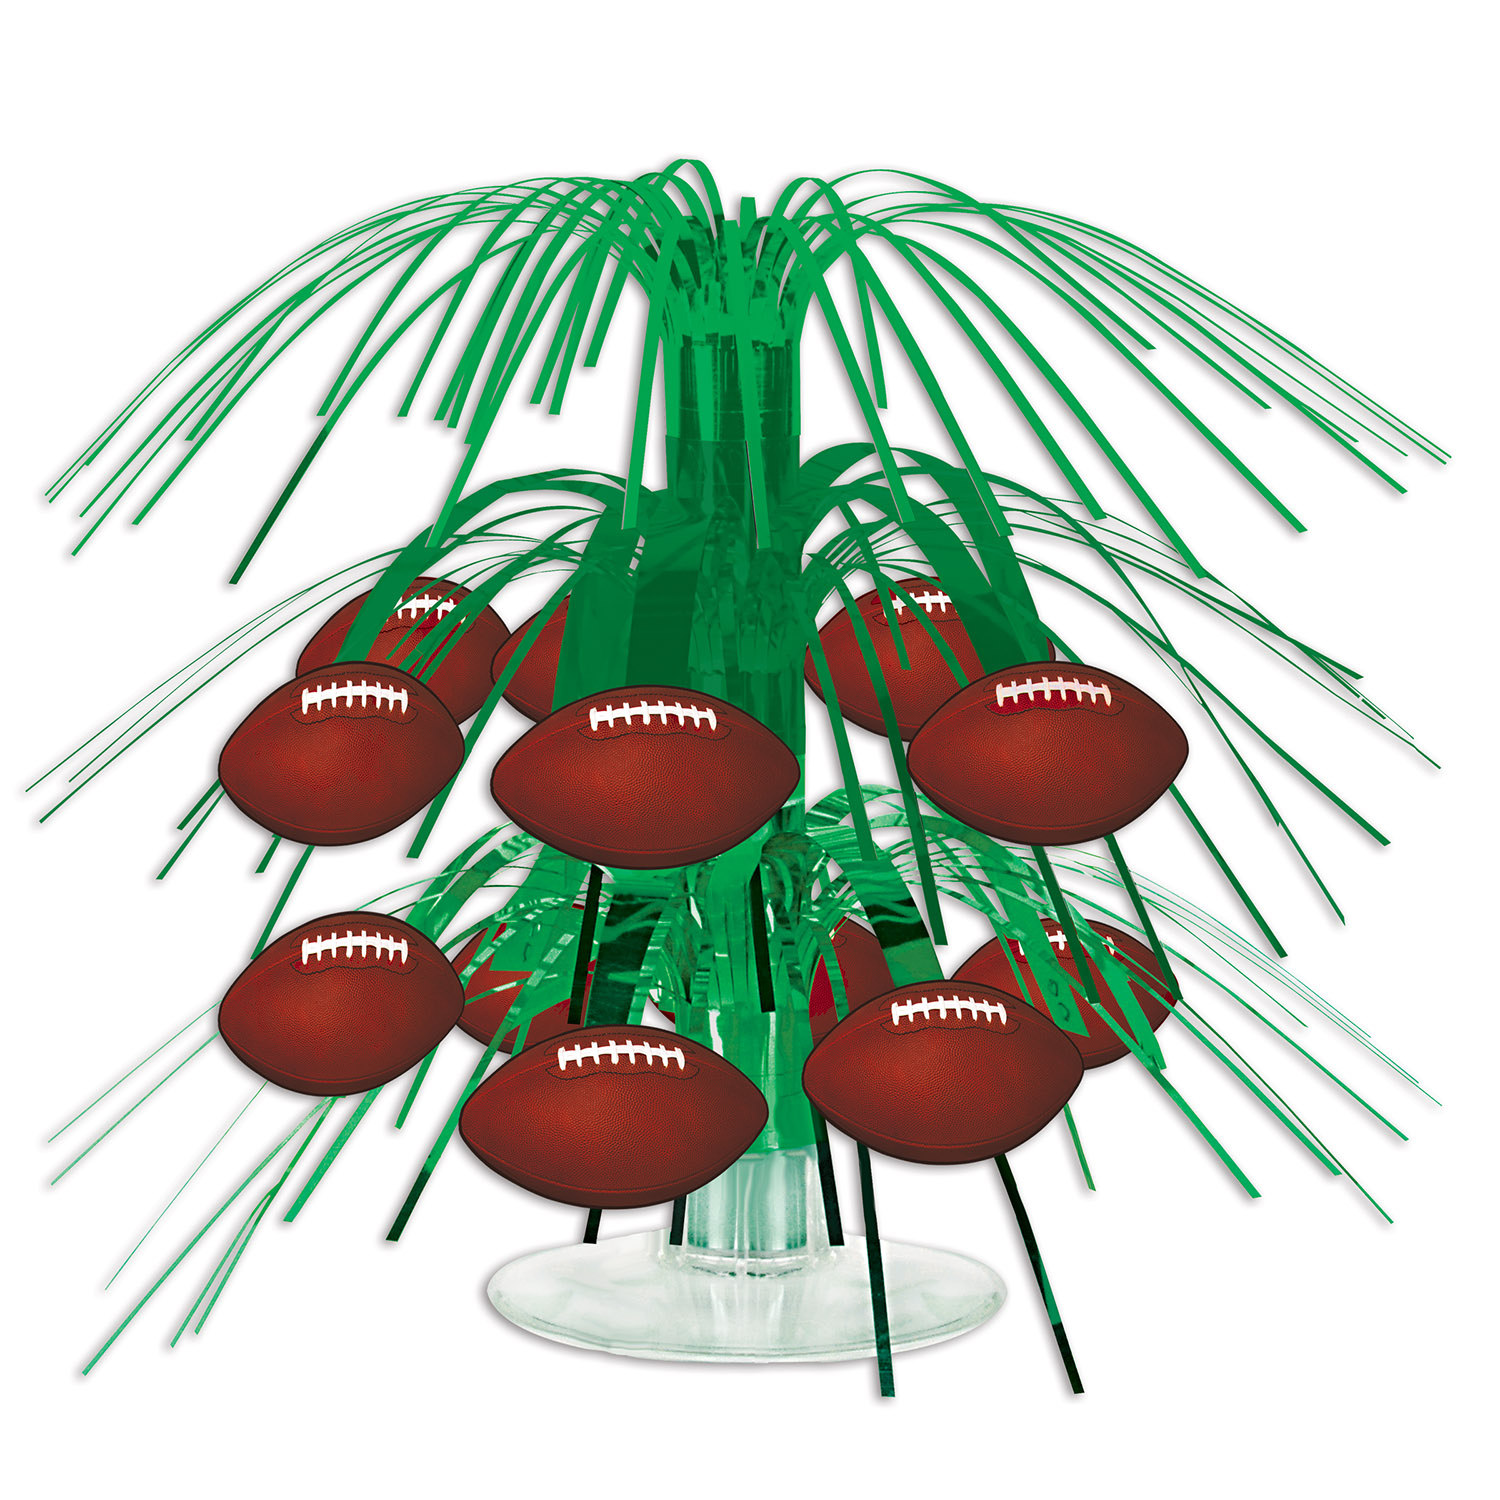 Football Mini Cascade Centerpiece (Pack of 12) Cheap Centerpiece, Football centerpiece, Football Decor, Cheap Football supplies, Game Day, Table Centerpieces, Wholesale decorations, Cheap party goods, Tissue Centerpieces, Inexpensive party